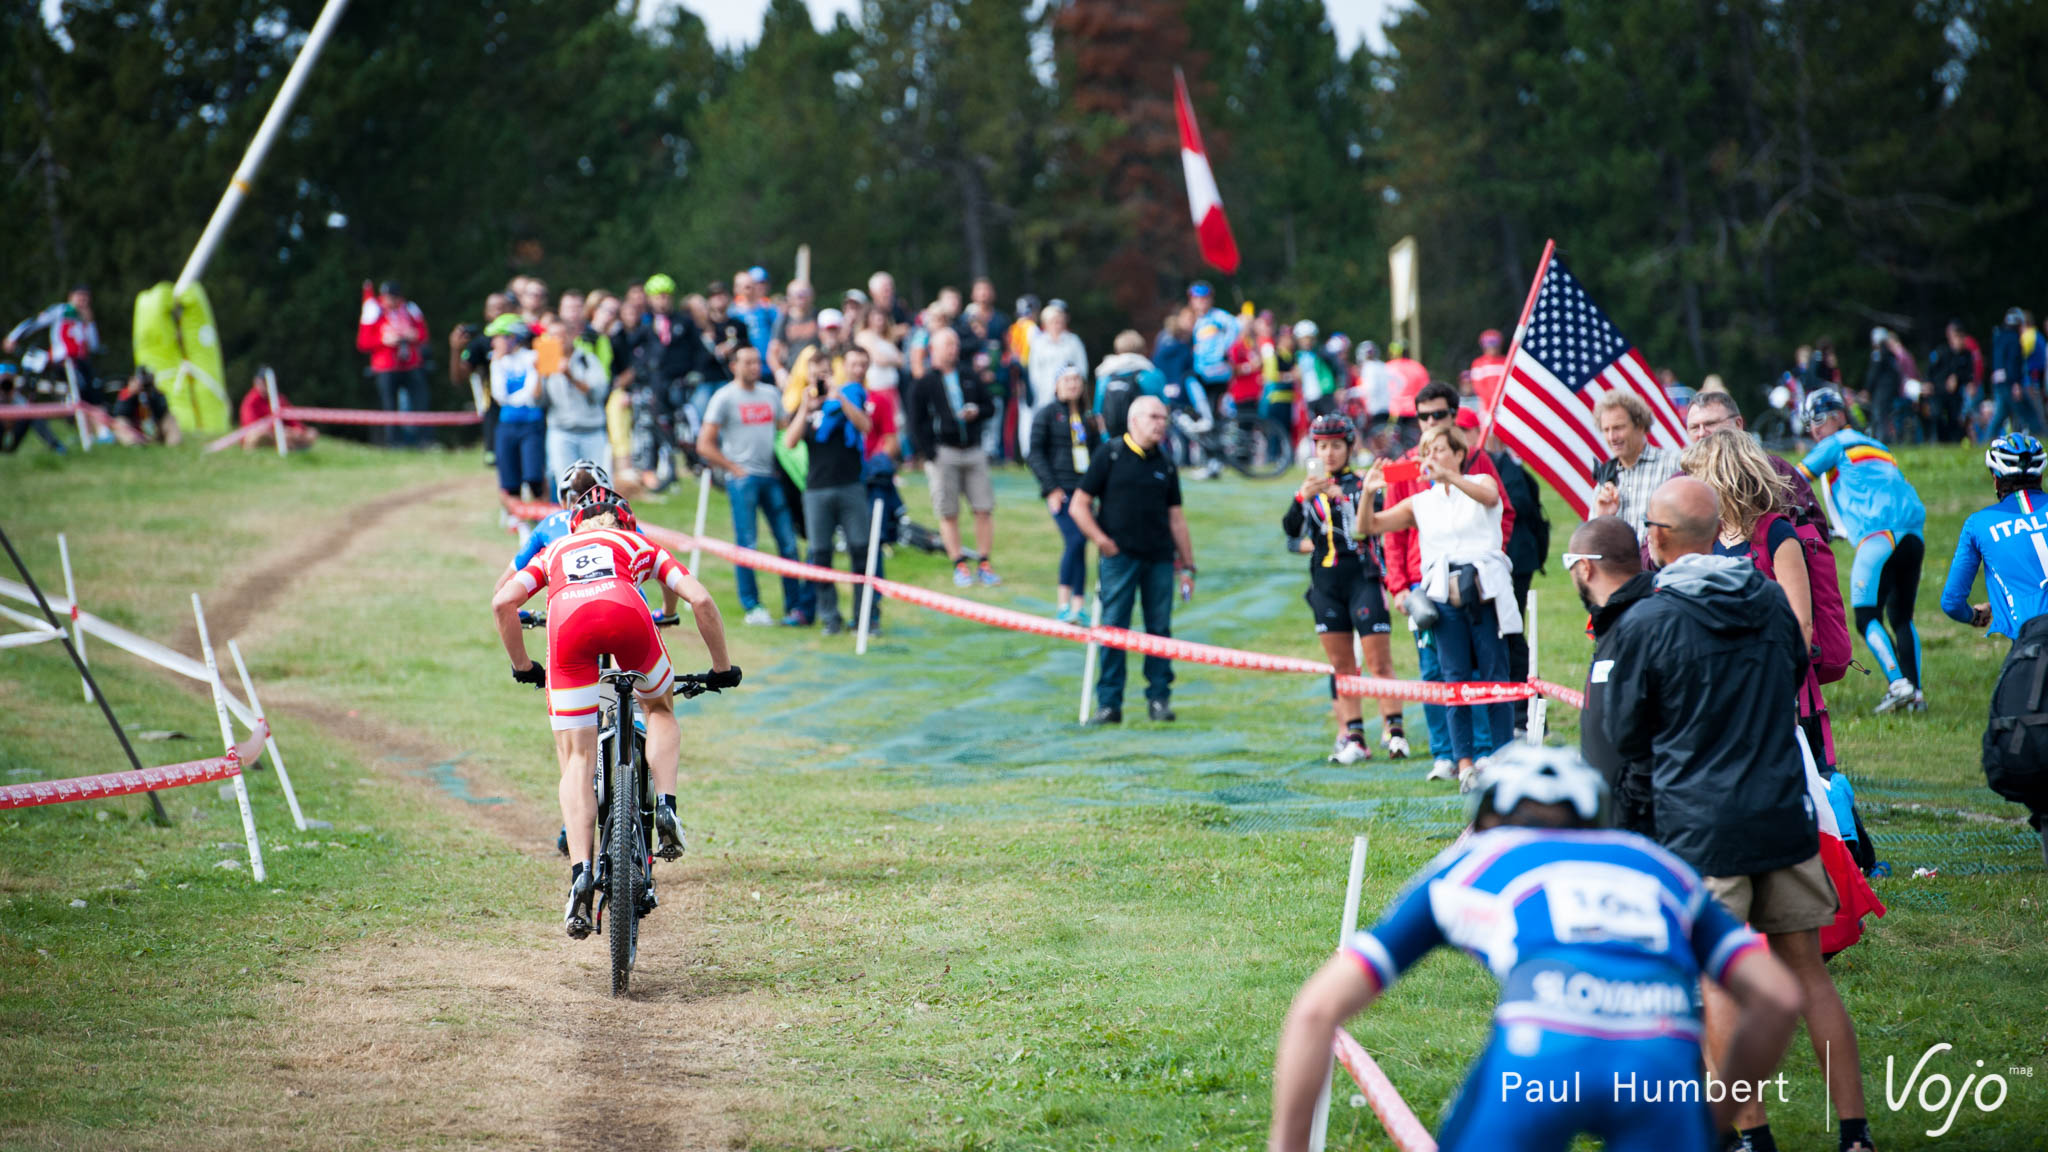 Worldchamps-2015-vojo-paul-humbert-xc-relai